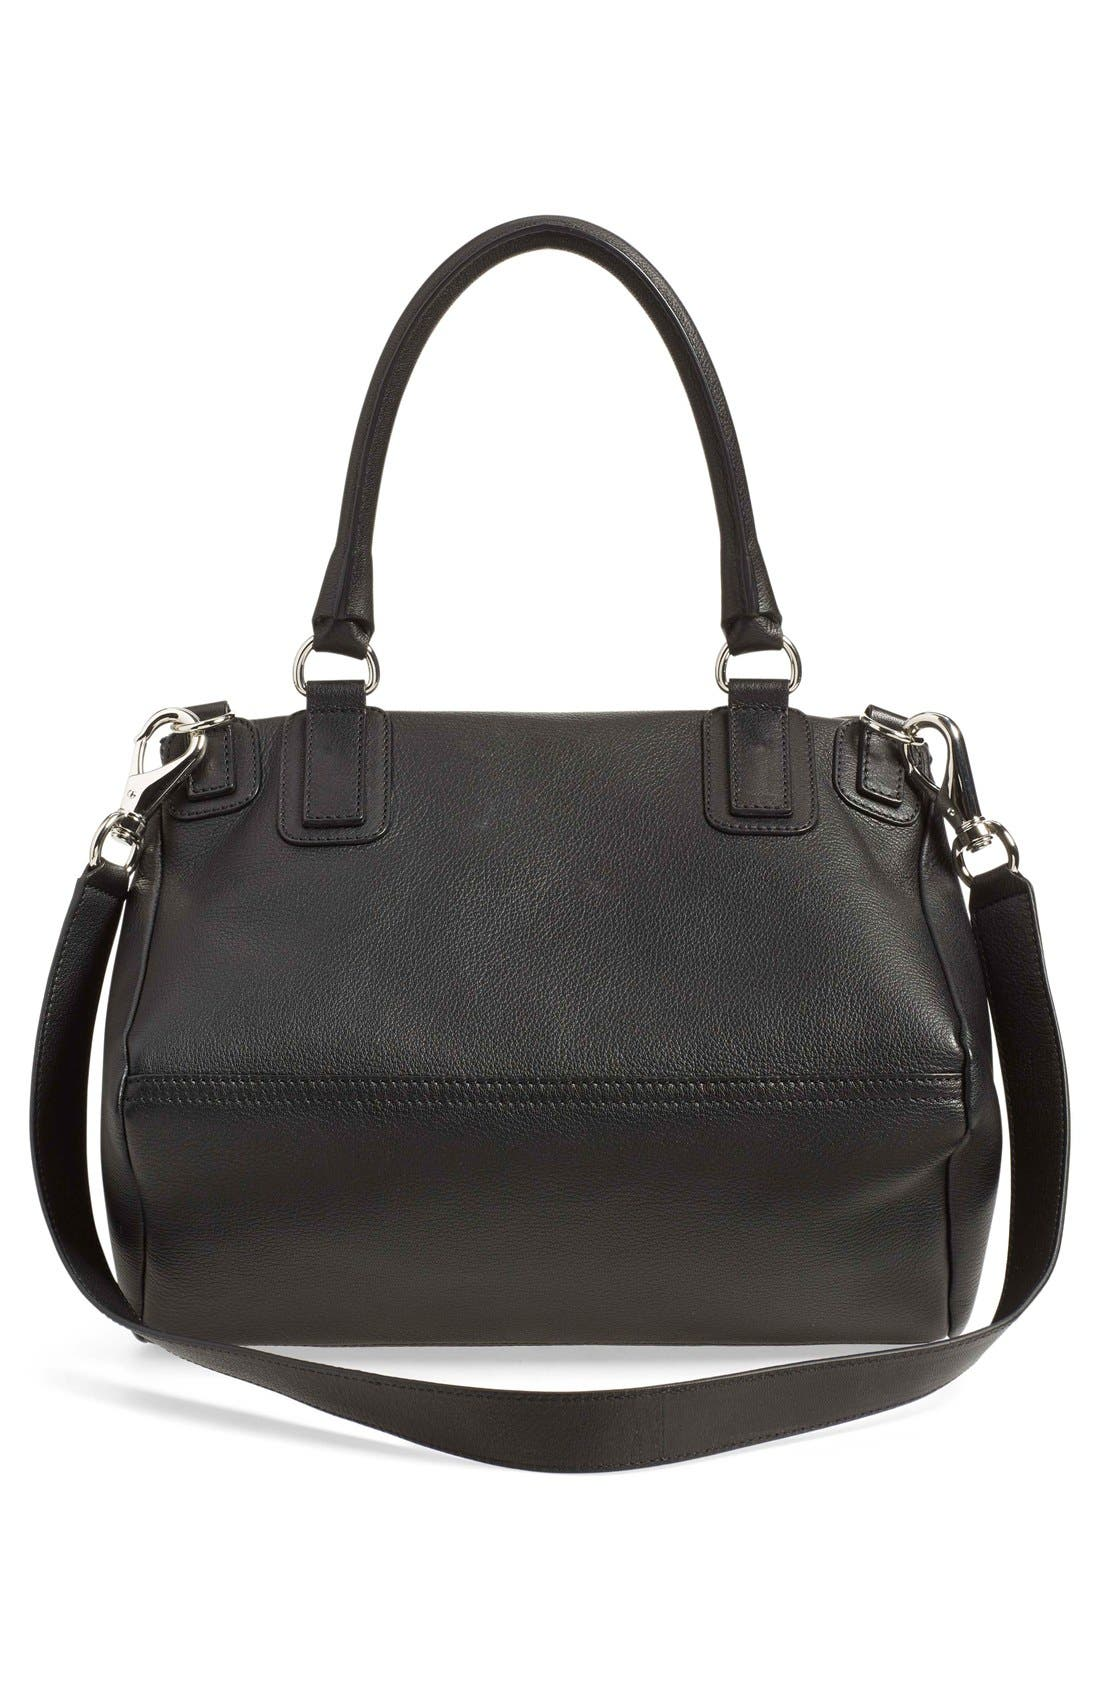 'Medium Pandora' Sugar Leather Satchel,                             Alternate thumbnail 3, color,                             BLACK